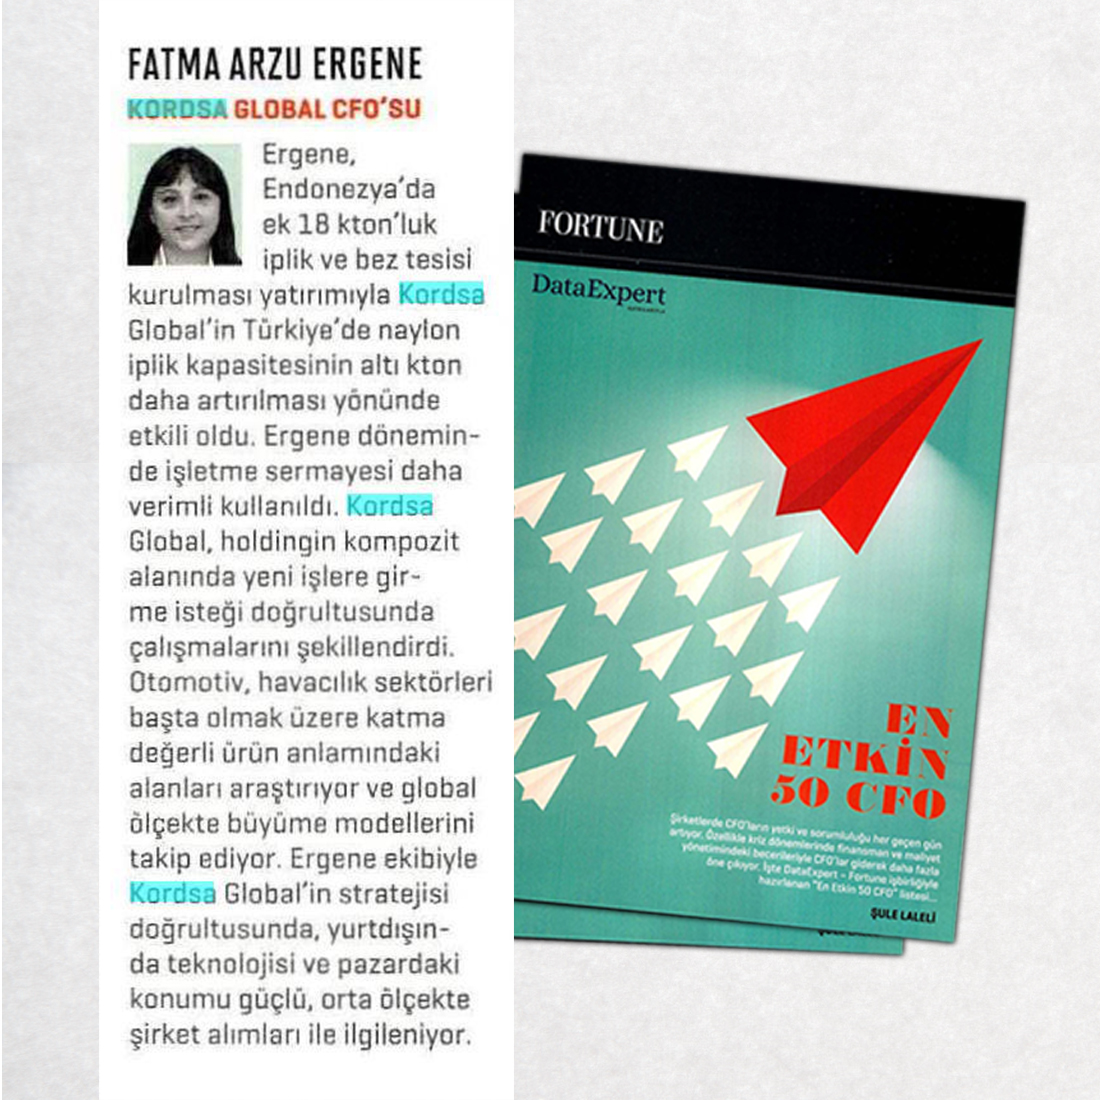 Arzu Ergene is among the 50 Most Influential CFOs of Turkey